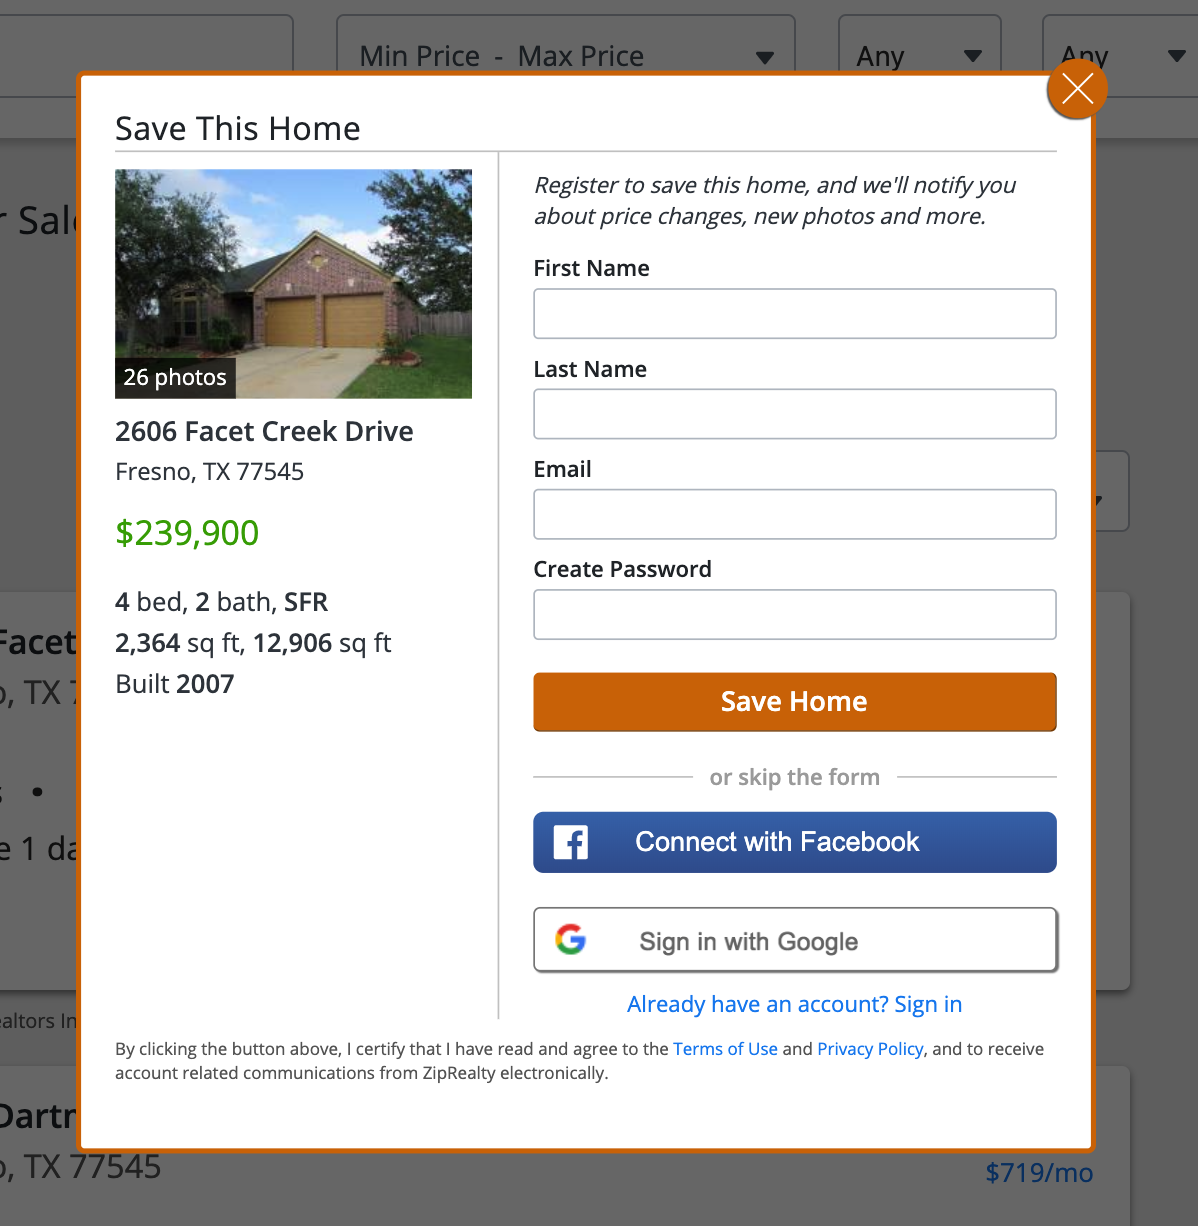 Tour Home module prior to DLUX - Not mobile friendly,